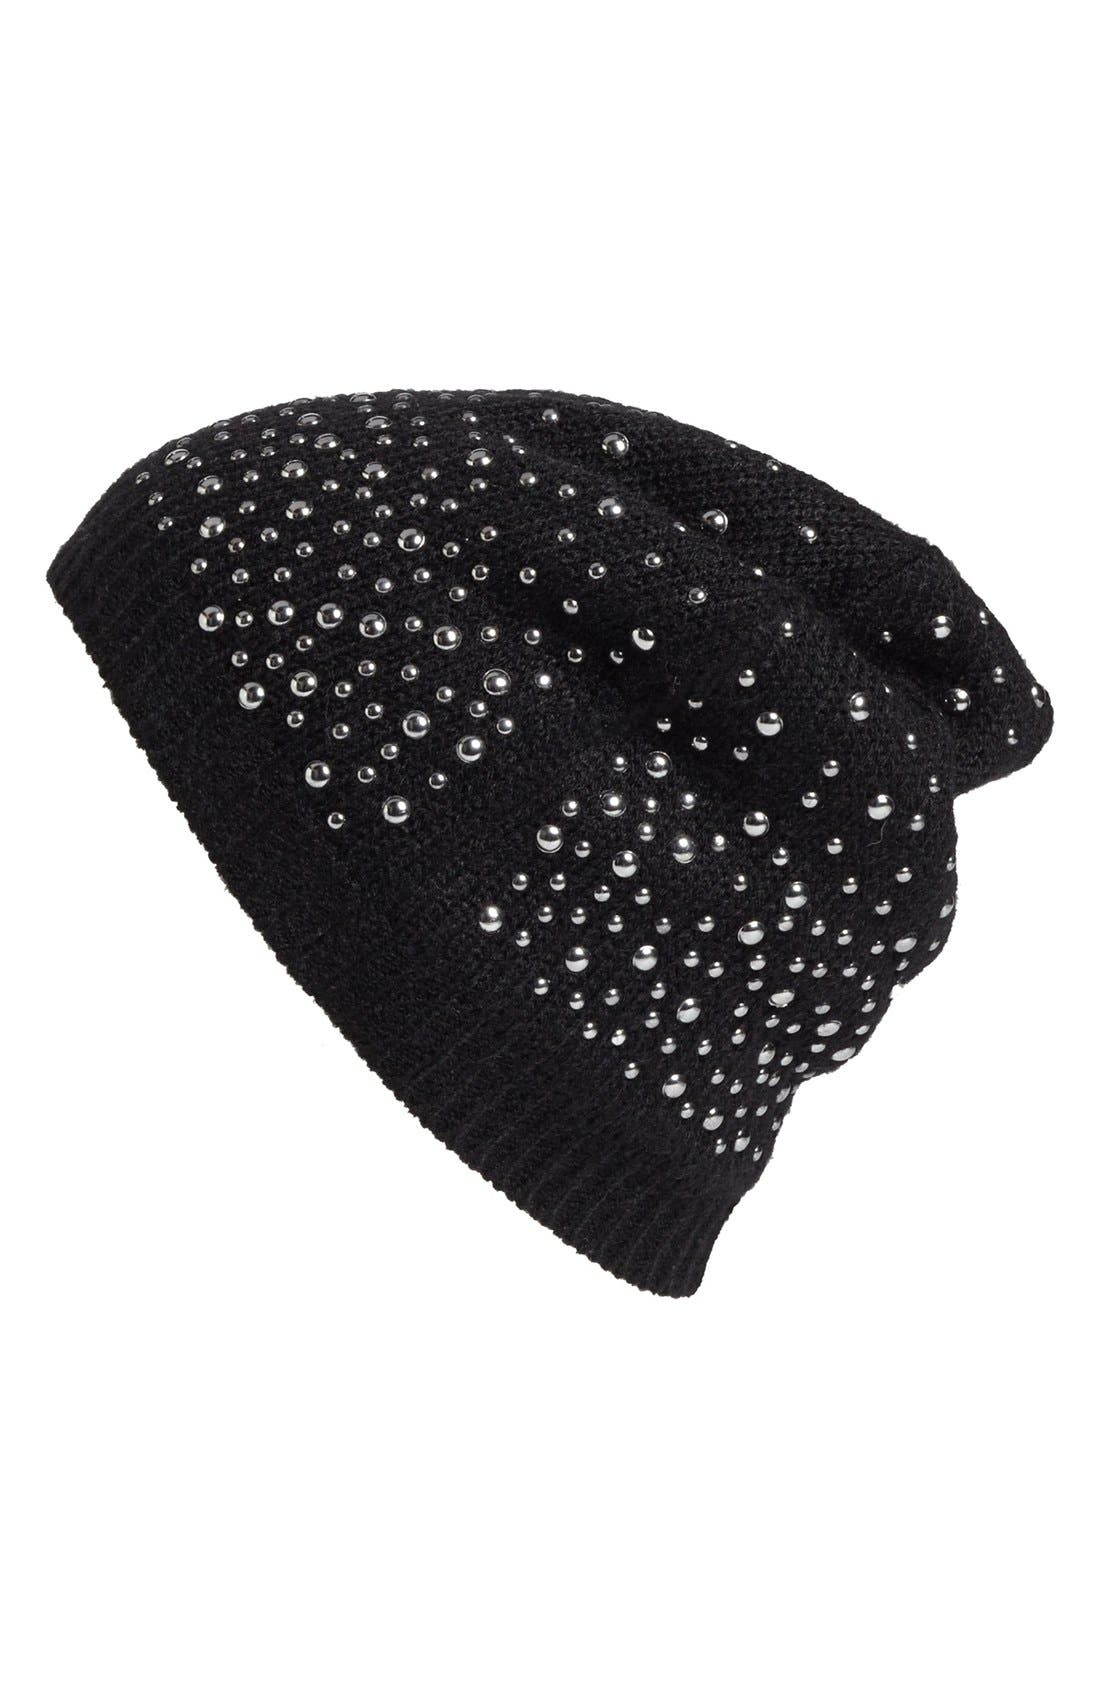 Alternate Image 1 Selected - Tarnish Studded Beanie